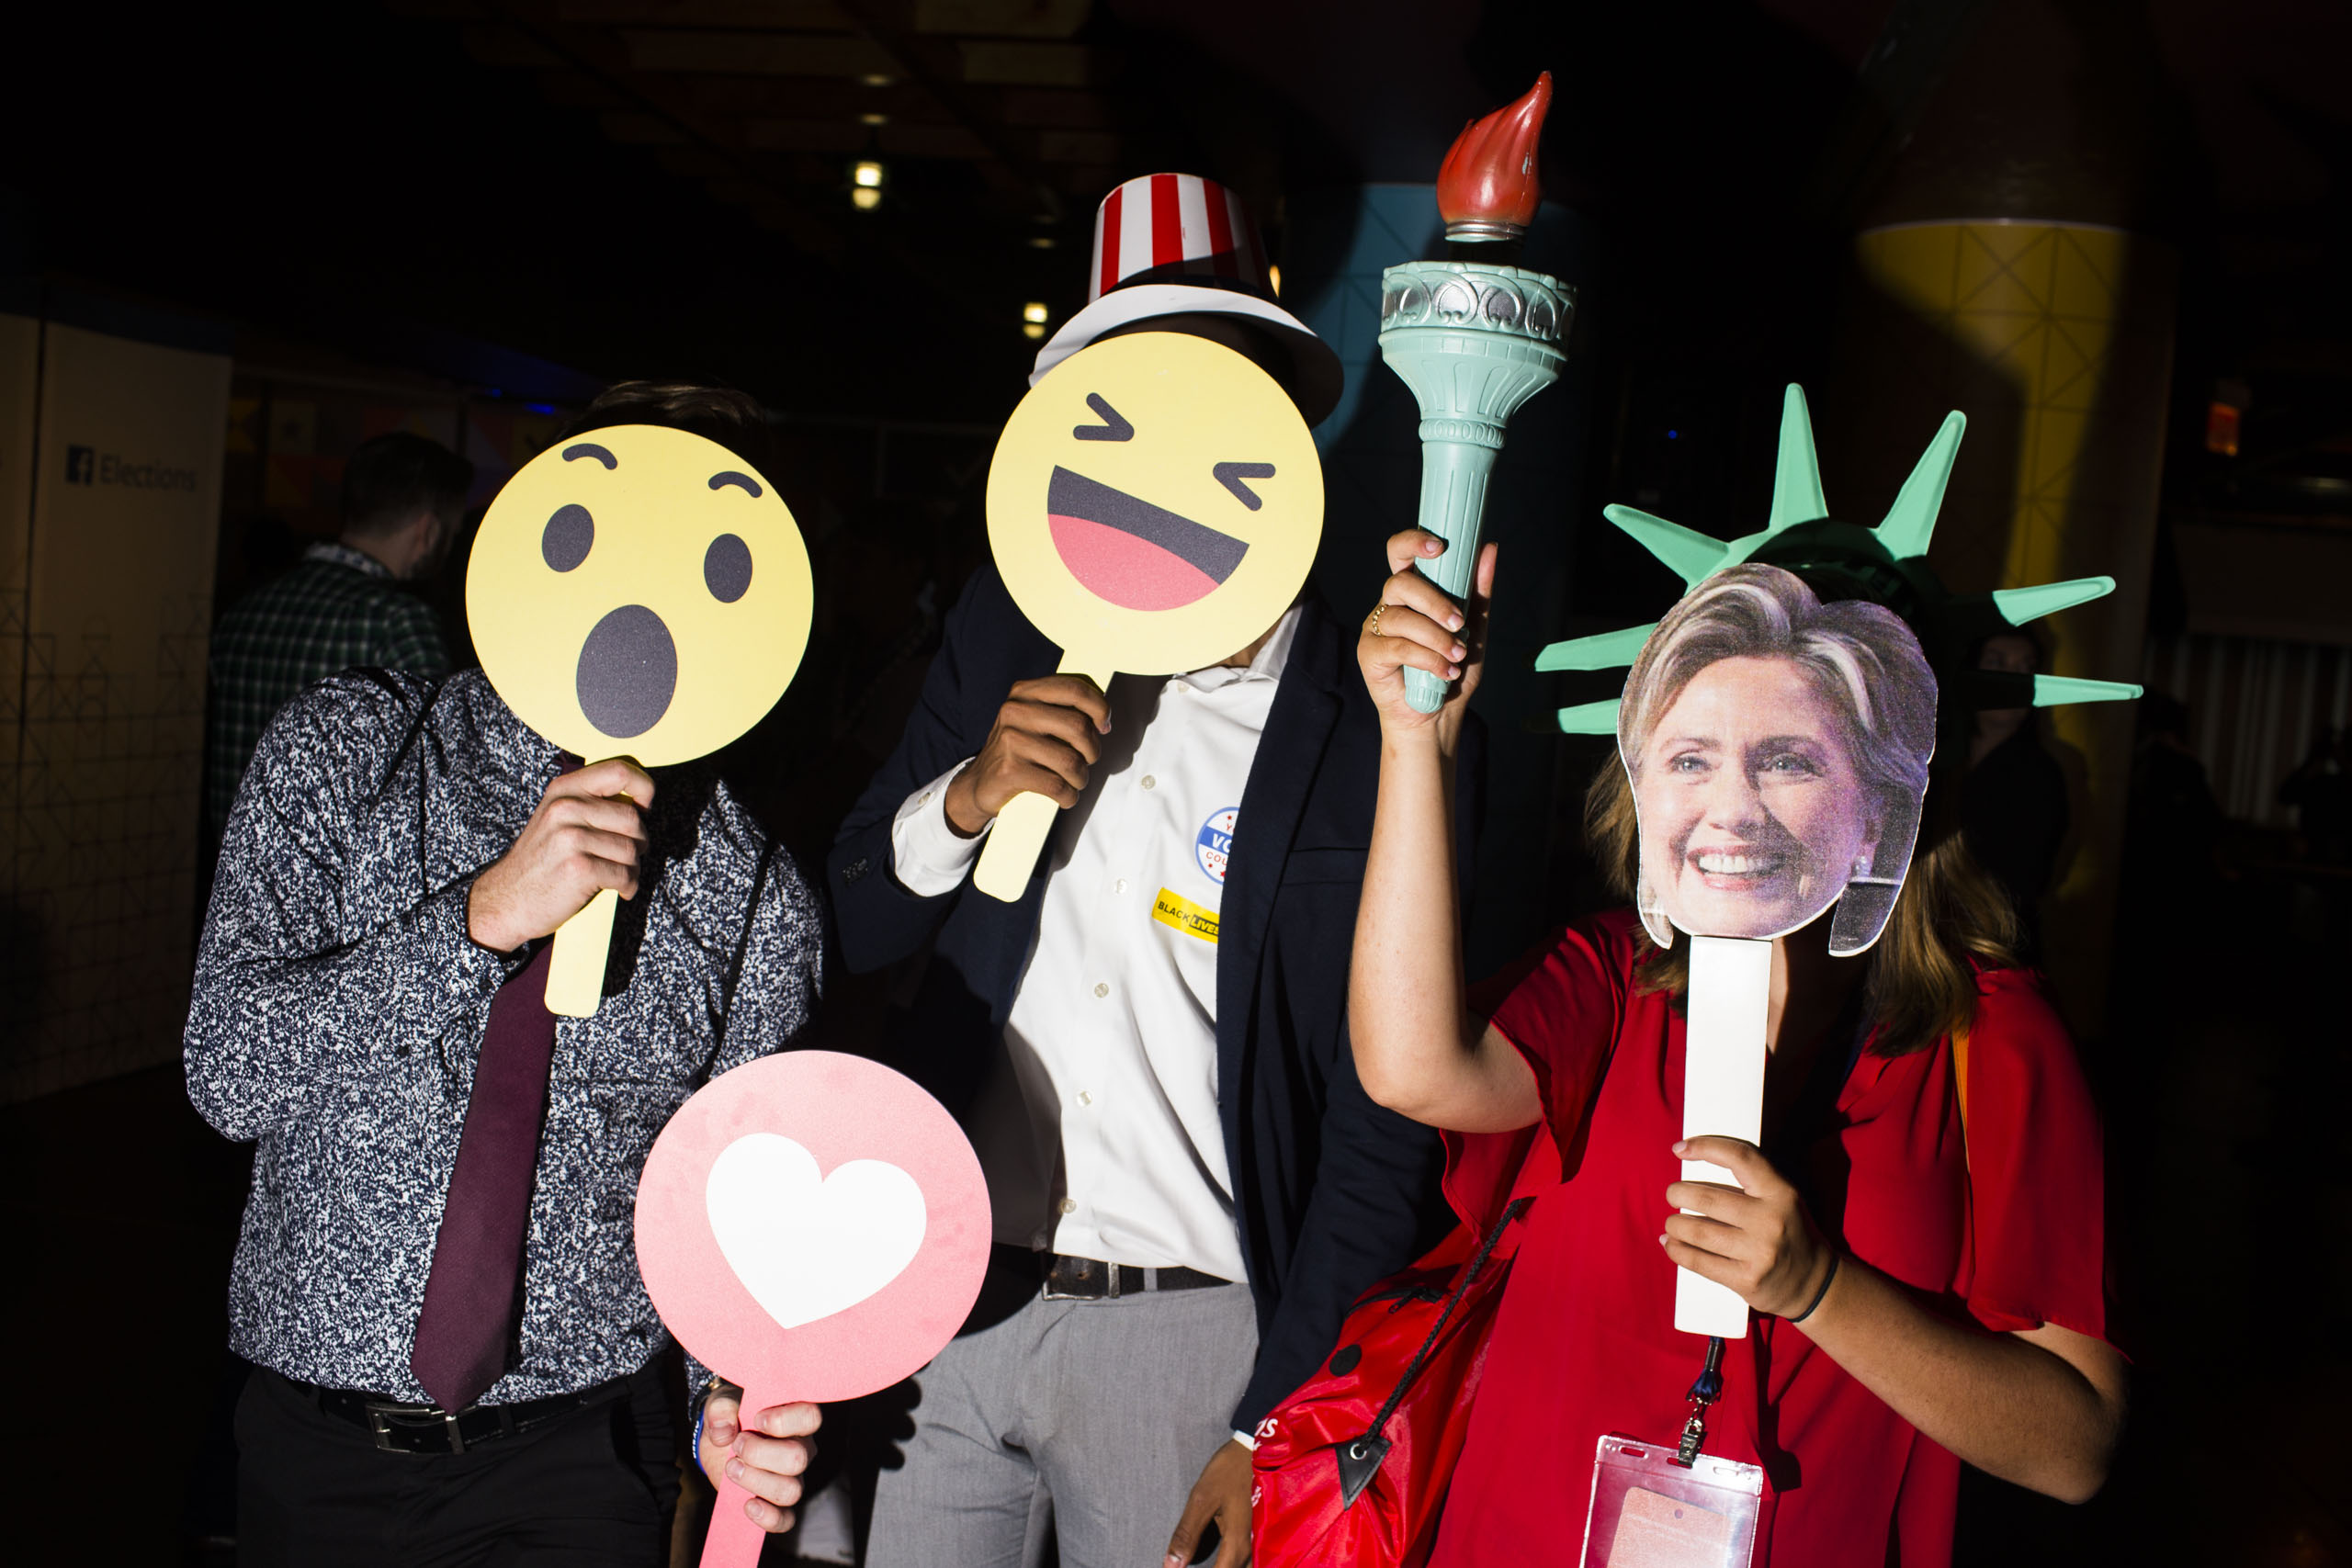 Members of College Democrats of America pose for pictures in the Instagram/Facebook lounge at the 2016 Democratic National Convention in Philadelphia on Monday, July 25, 2016.